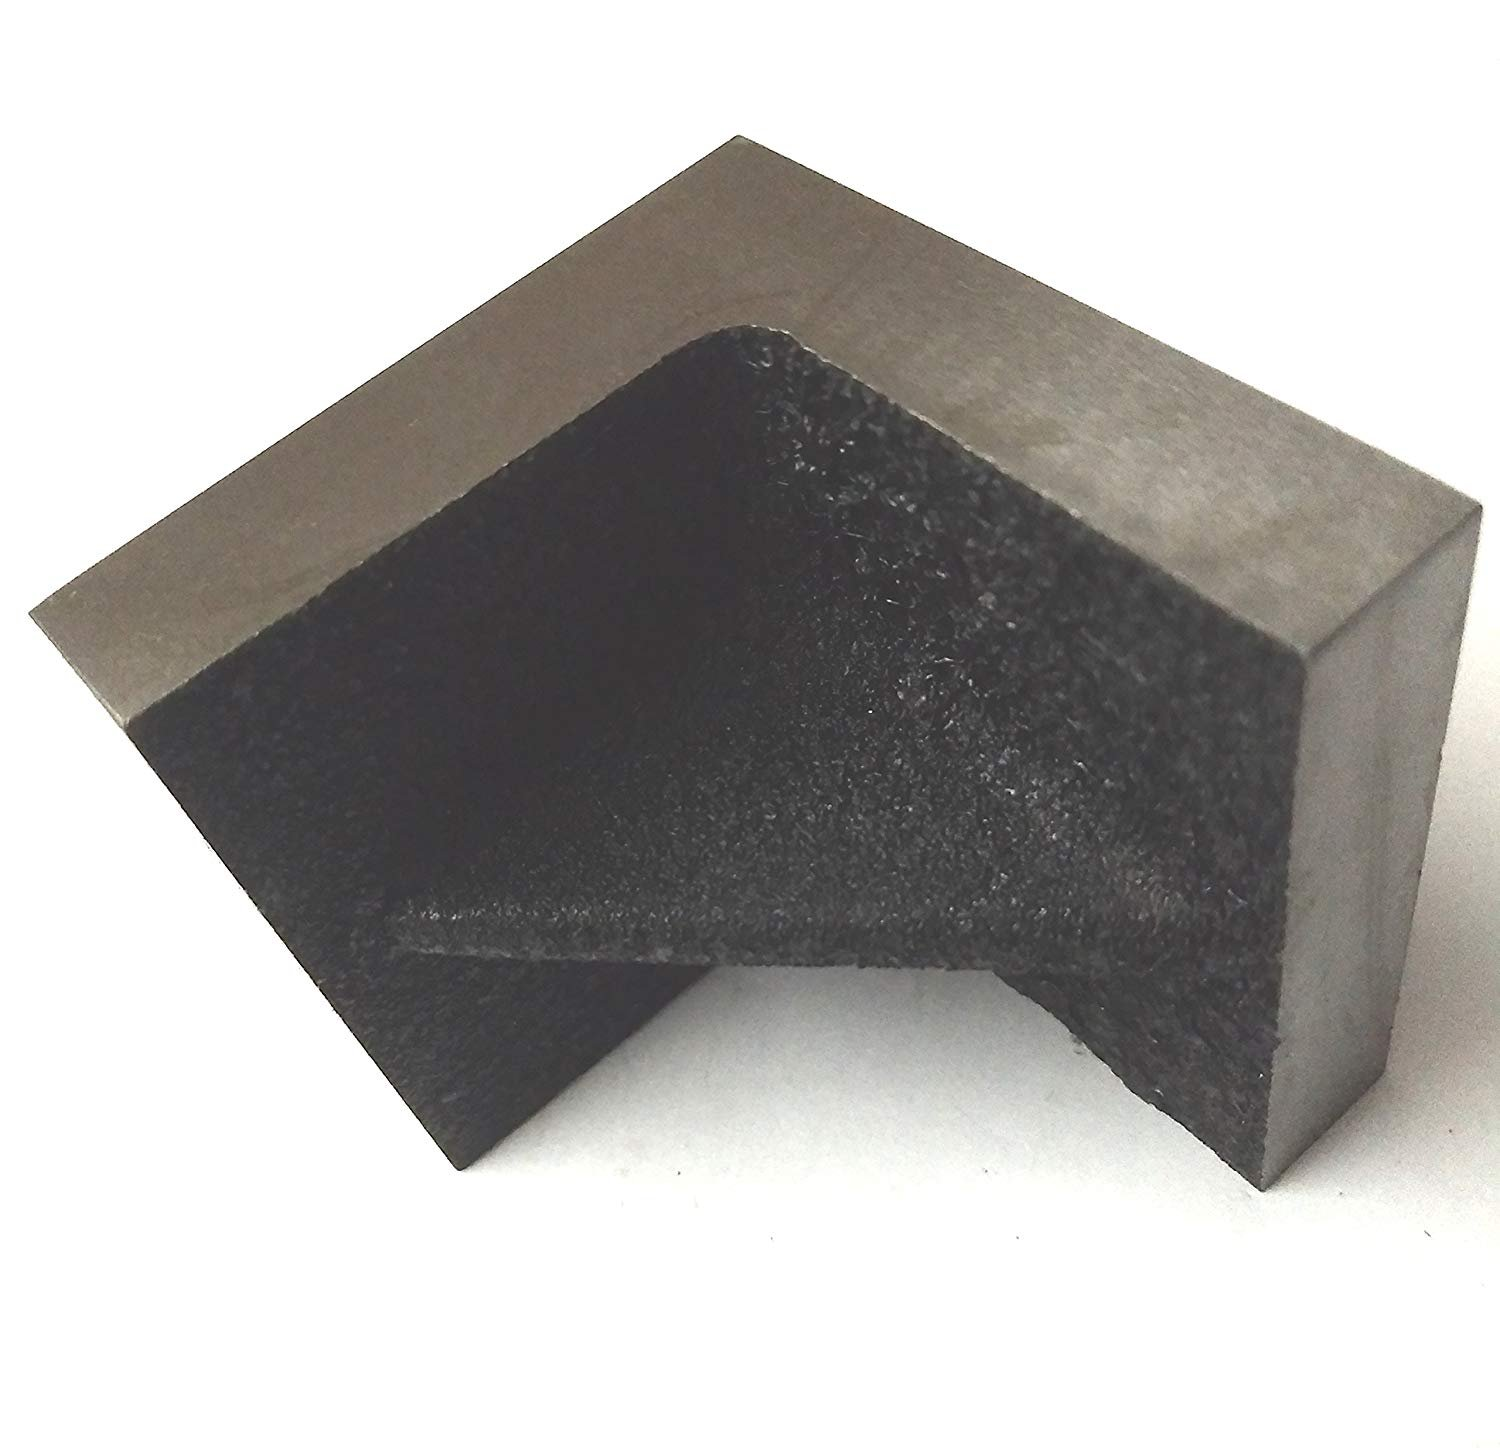 Caste Iron Solid Webbed Angle Plate 2 x 2 x 2 Stress Relieved